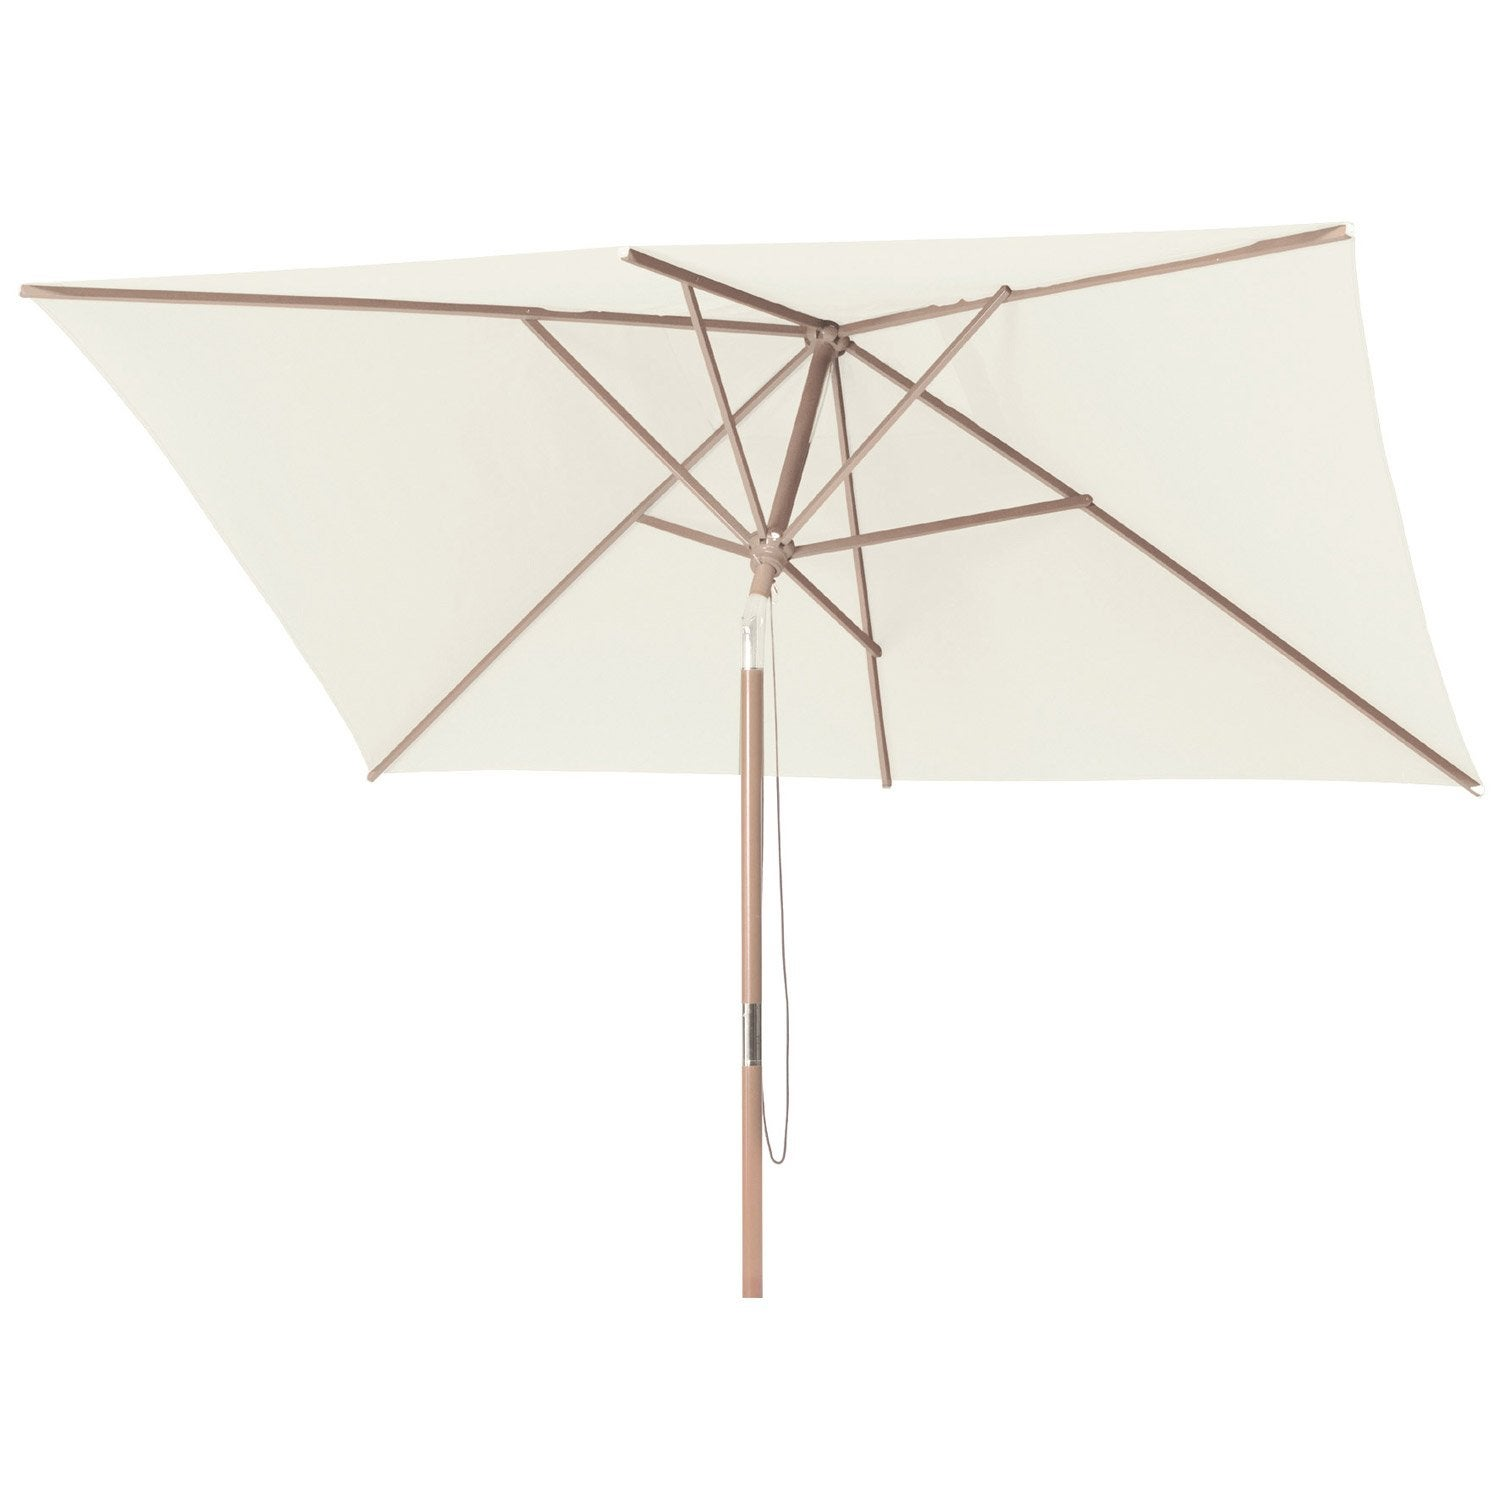 Parasol droit Malaga naturel rectangulaire, L.300 x l.200 cm